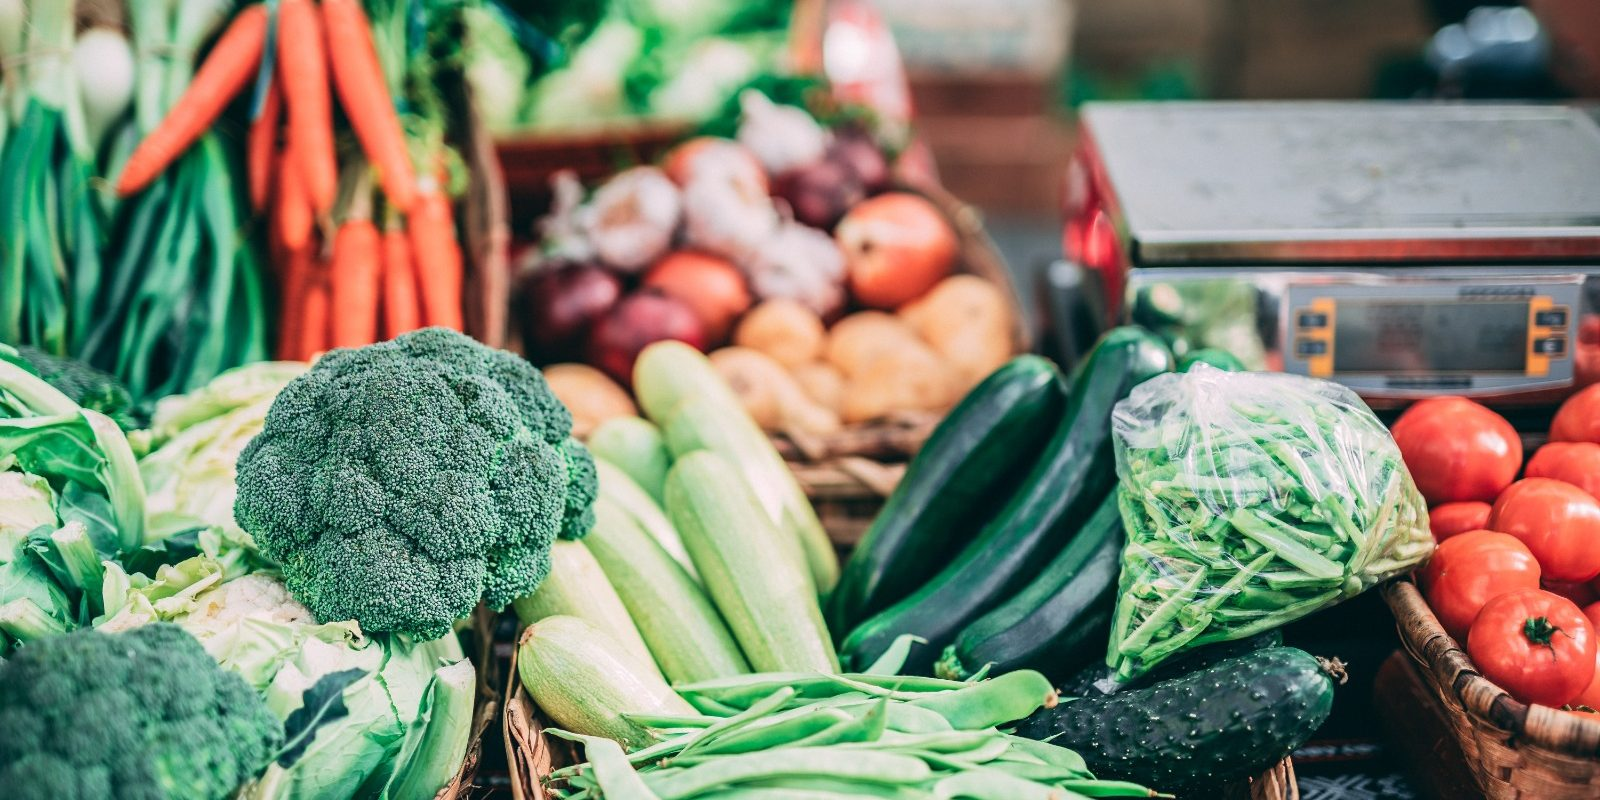 Why Small, Local Growers could put Big Growers out of Business